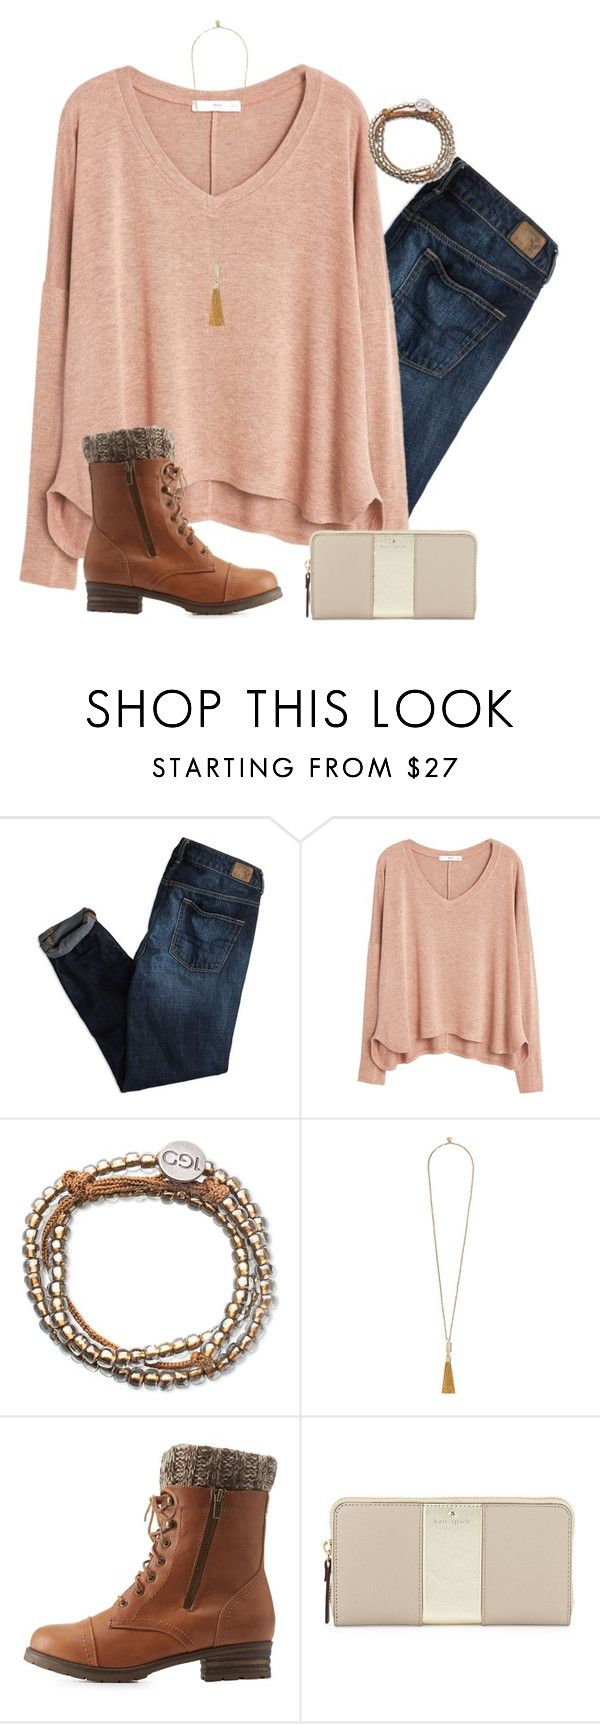 """""""Our time is now"""" by madelynprice ❤ liked on Polyvore featuring American Eagle Outfitters, MANGO, Vince Camuto, Charlotte Russe and Kate Spade"""